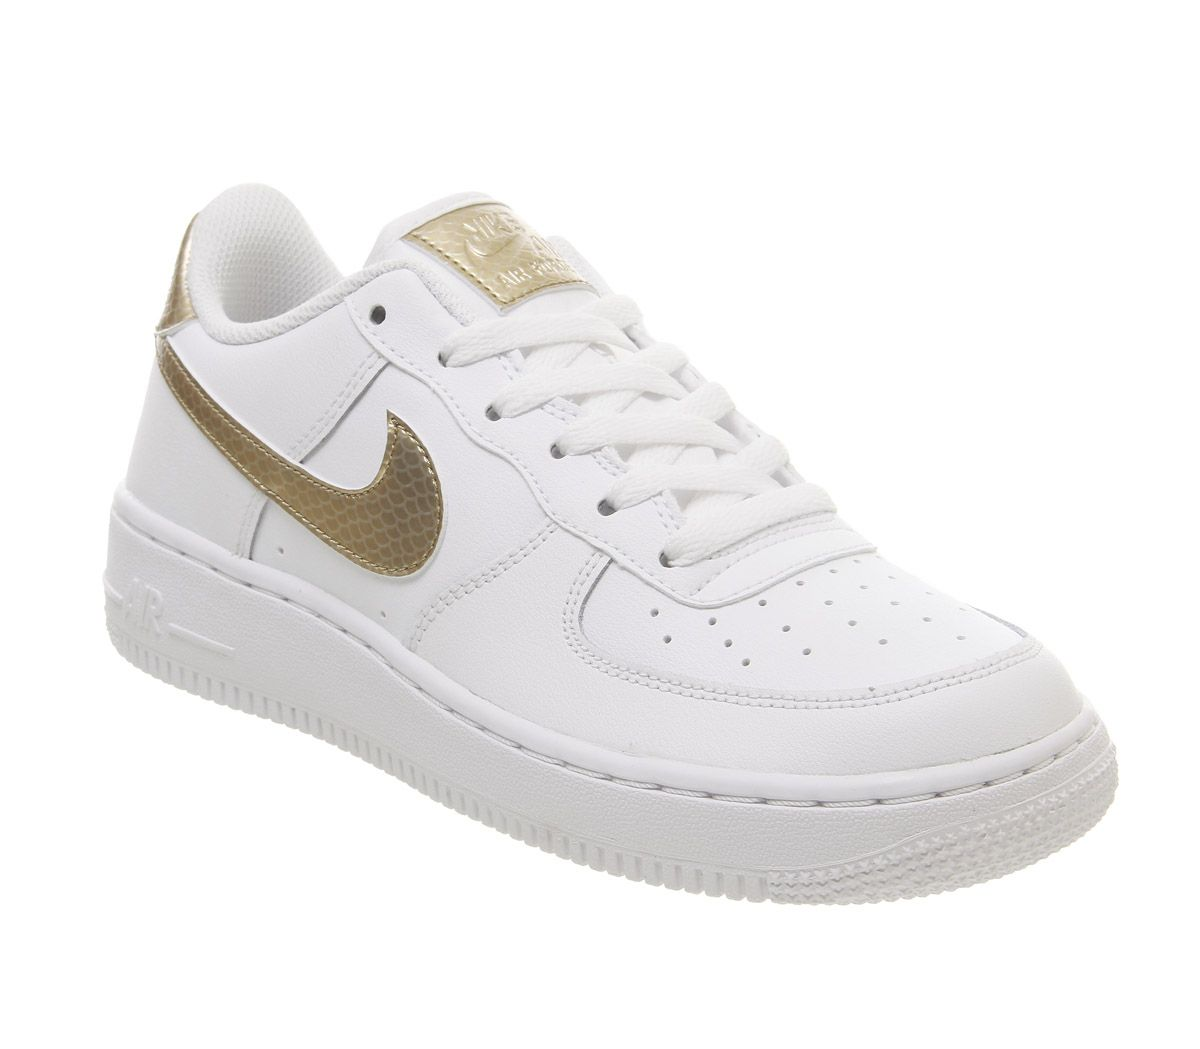 32ce450aa46 Nike Air Force 1 Trainers White Blush Gold - Hers trainers